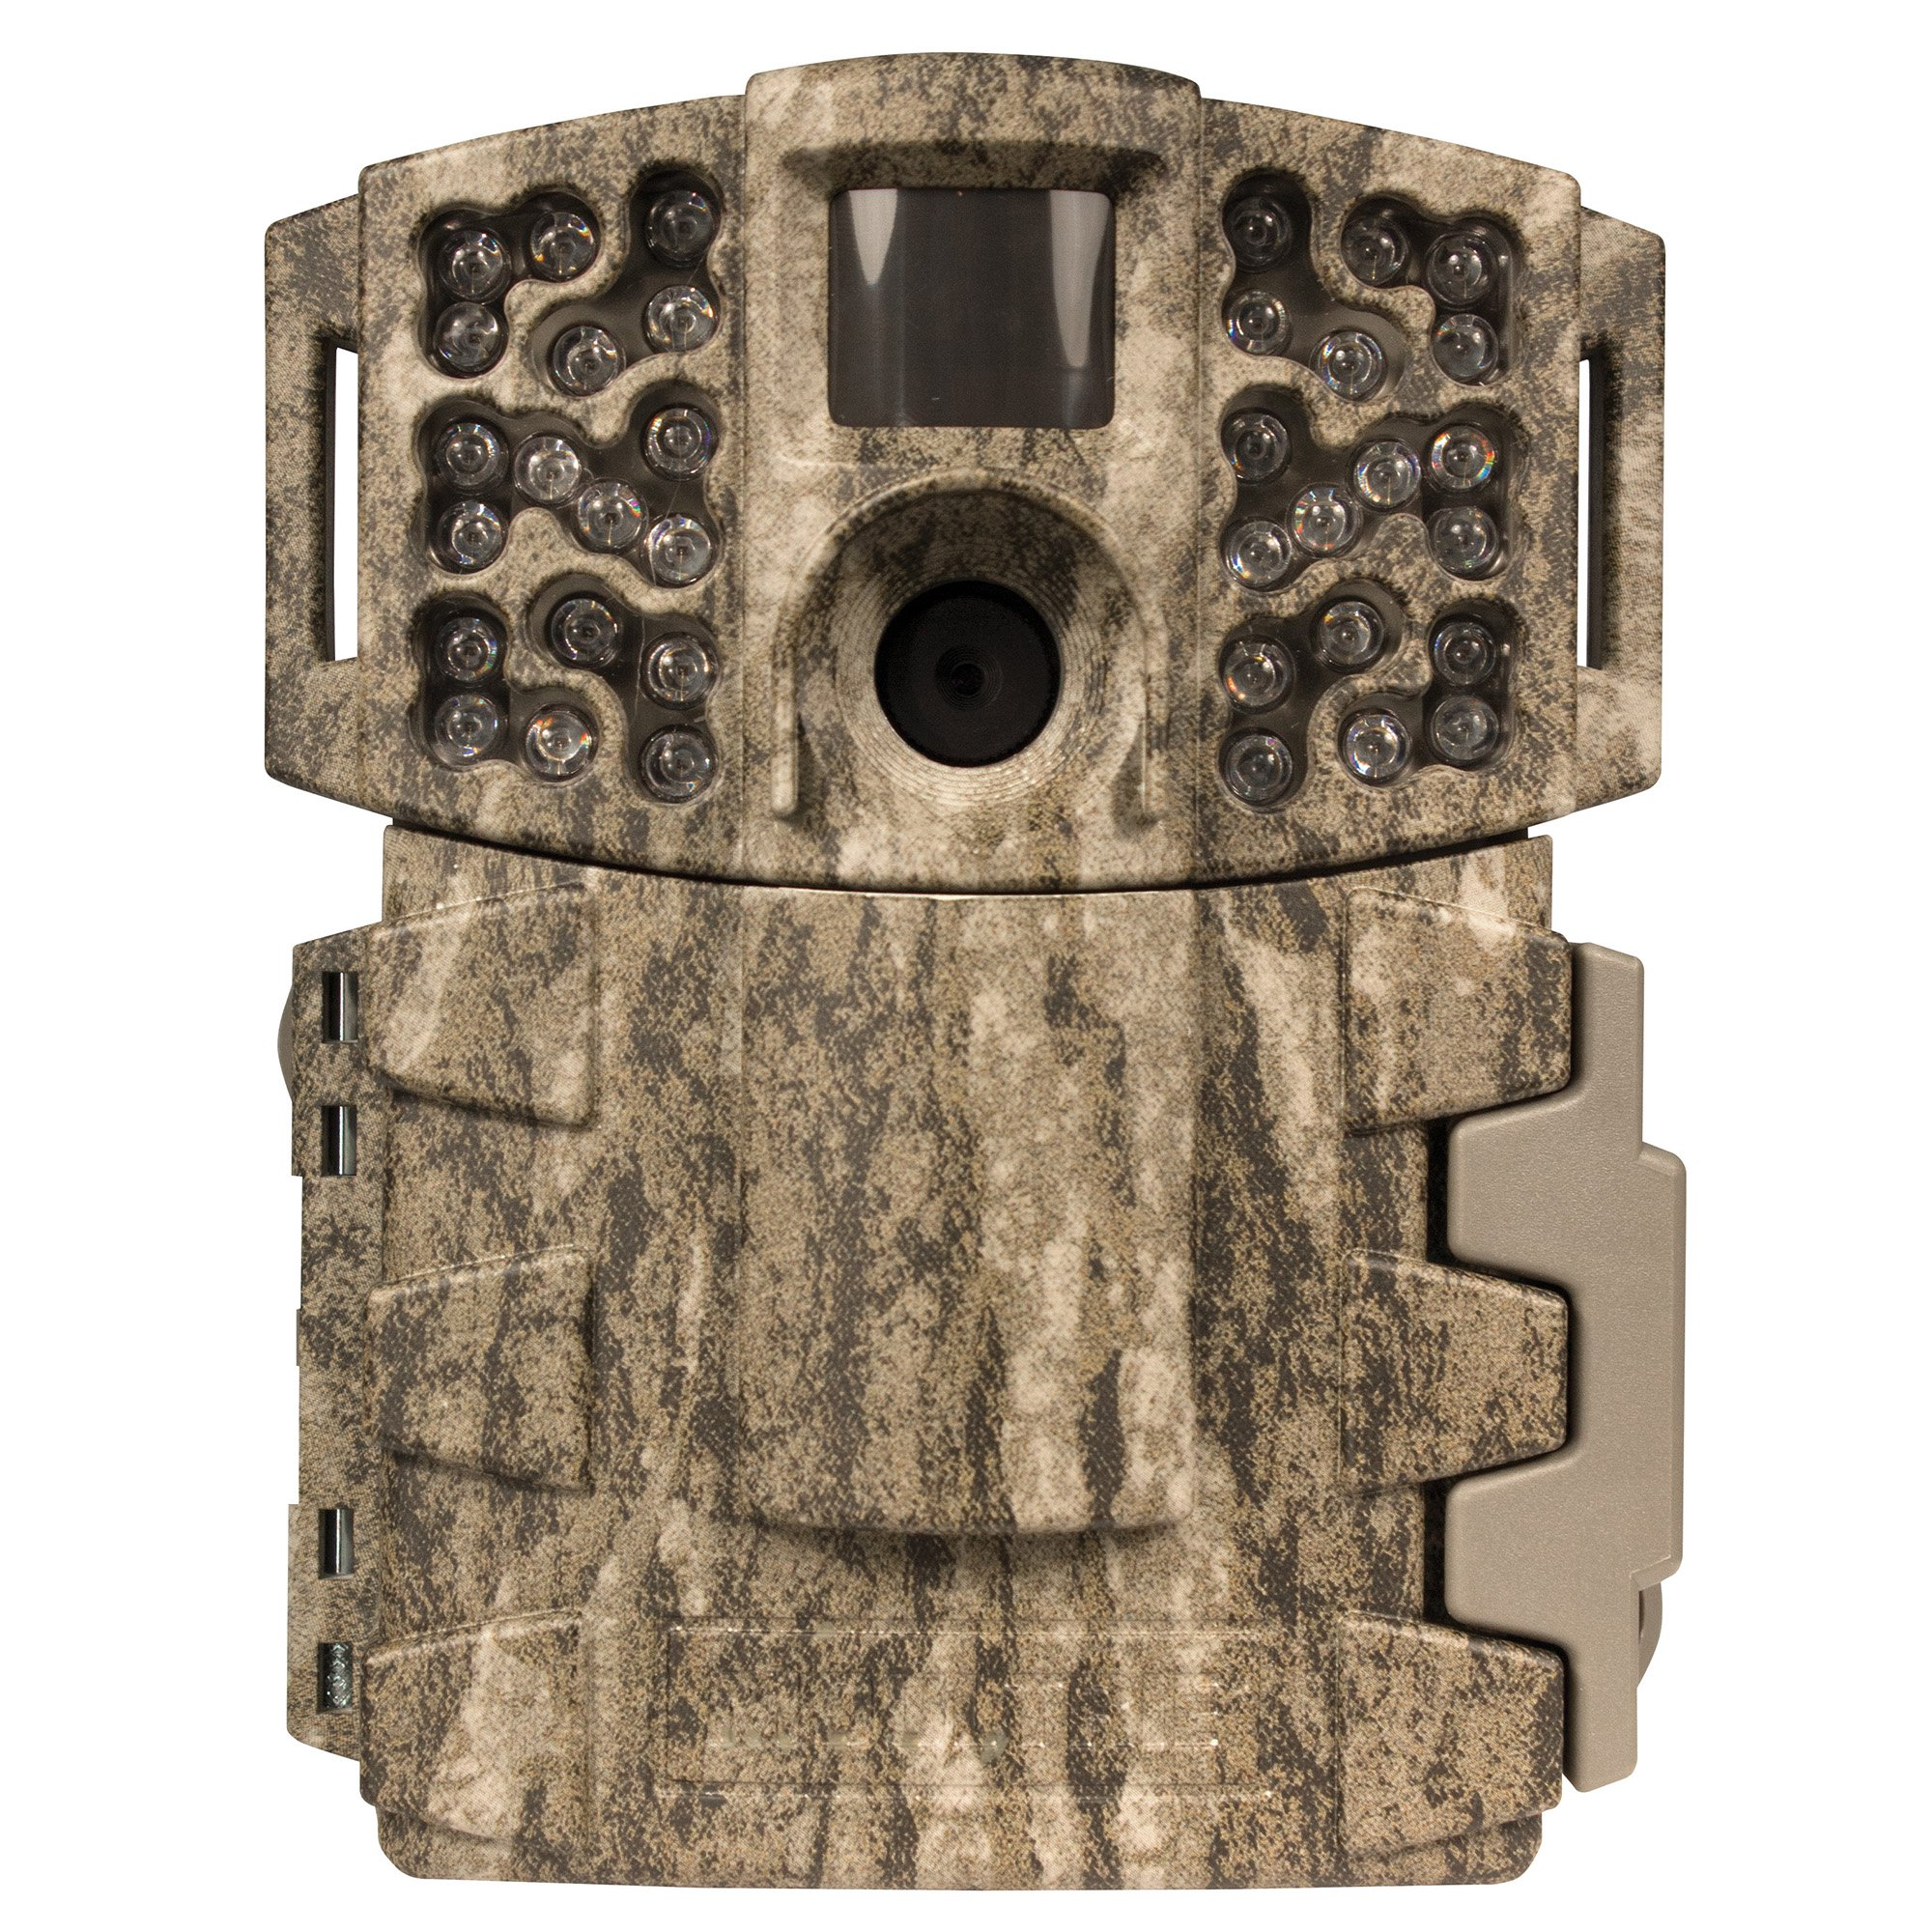 Moultrie No Glow Invisible 14MP Mini 888i Infrared Trail Game Camera | M-888i by